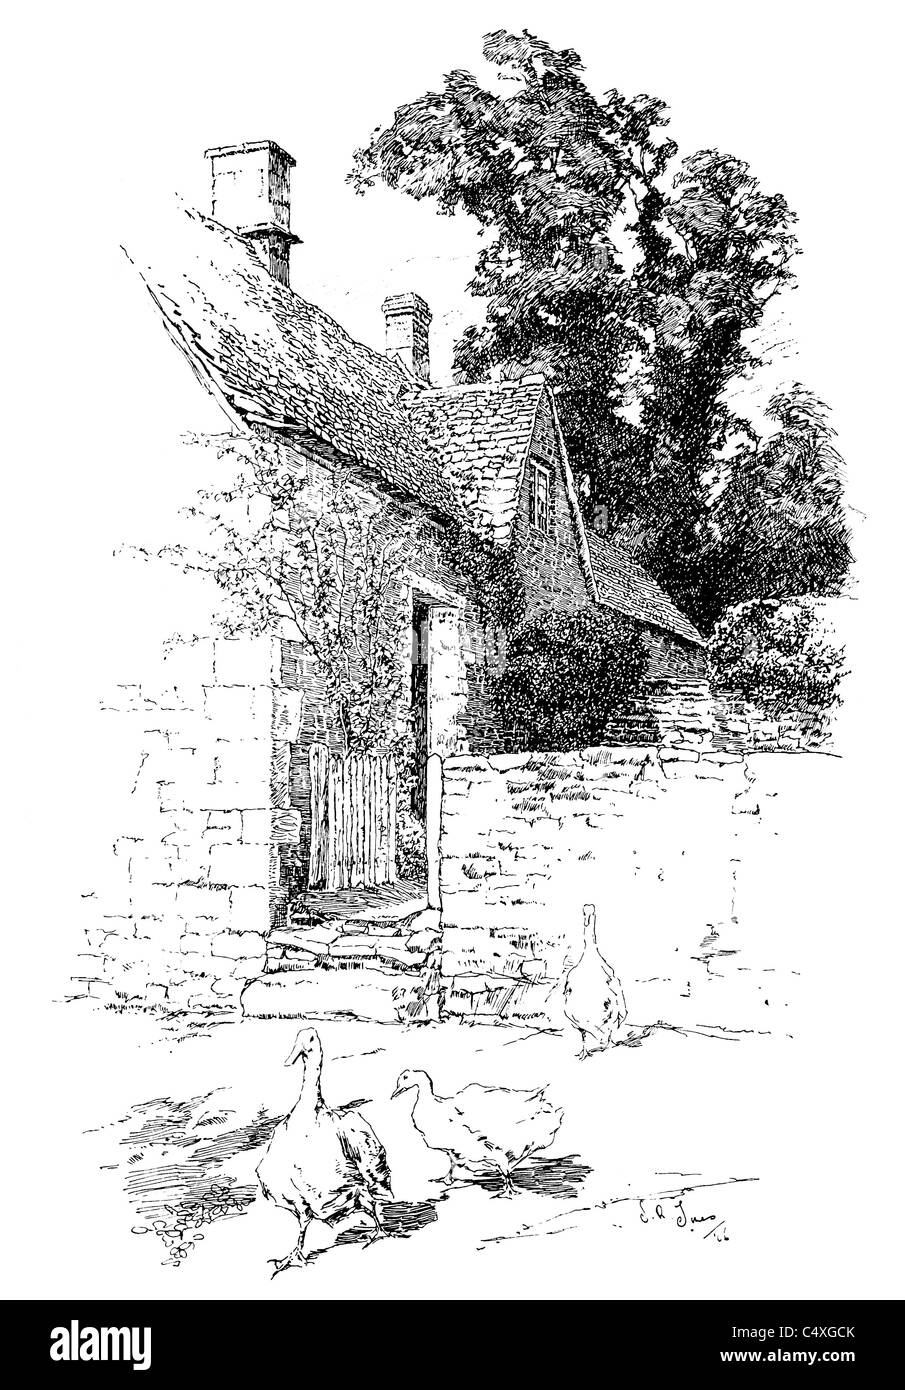 Arlington, Gloucestershire - pen and ink illustration from 'Old English Country Cottages' by Charles Holme, - Stock Image